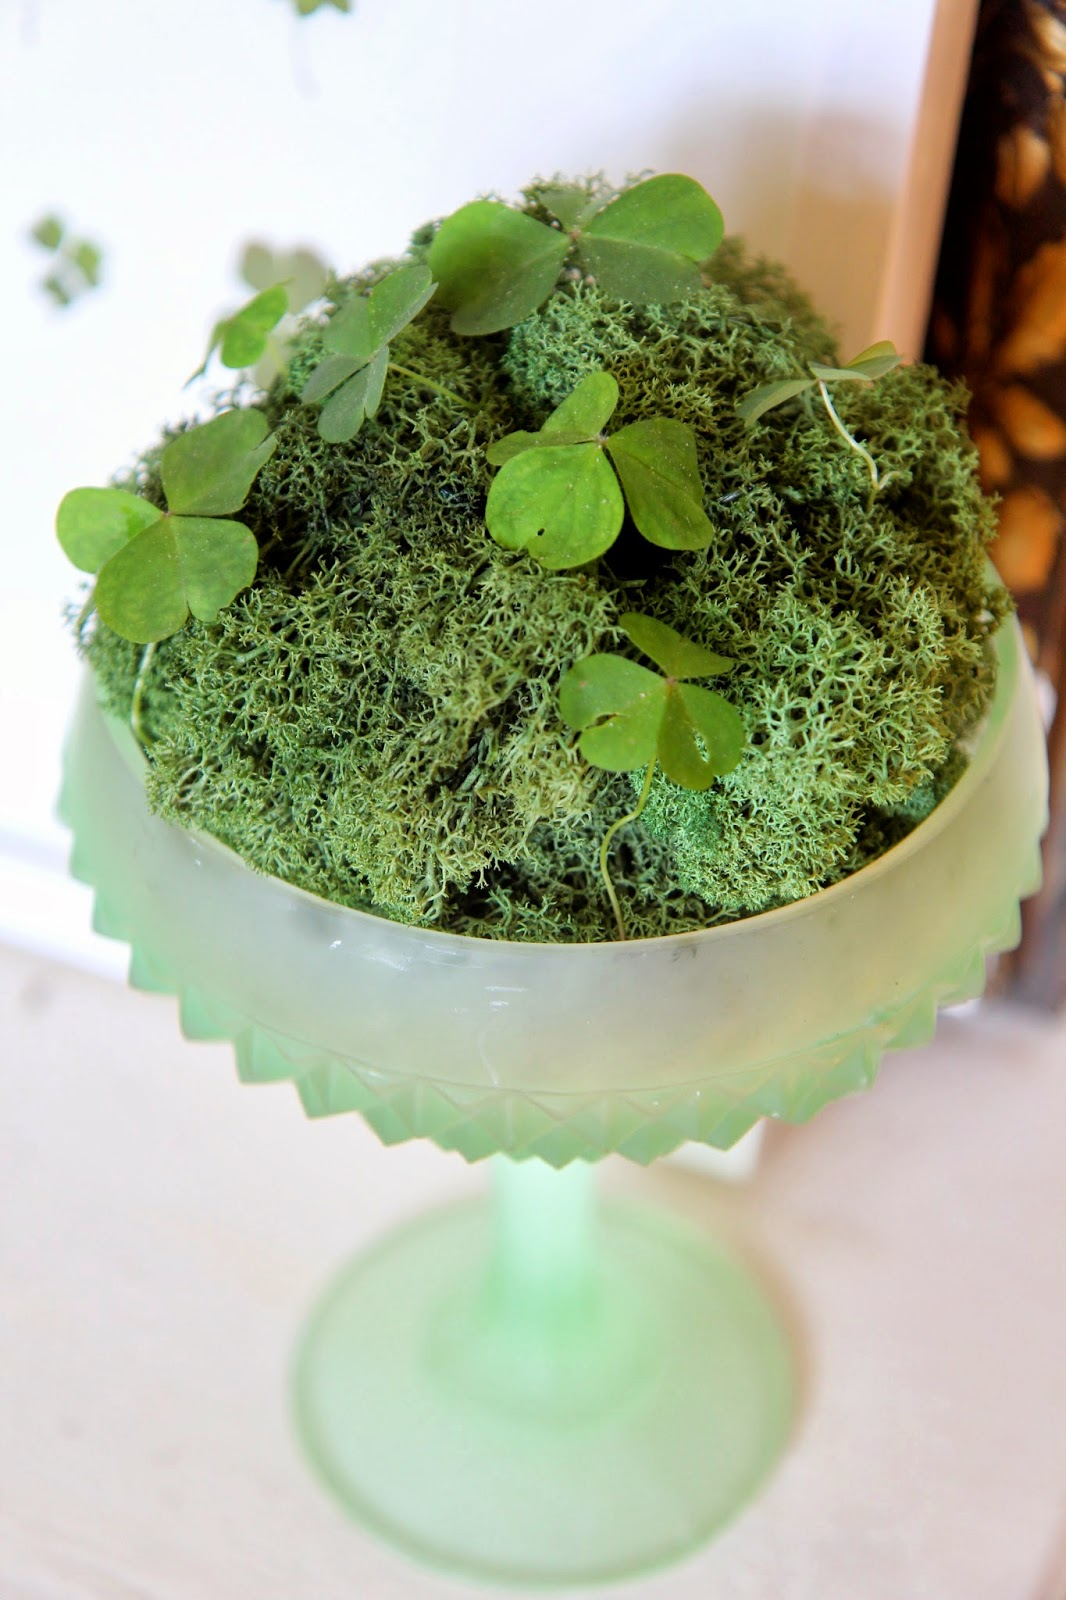 Green Compote and Shamrocks for St. Patrick's Day Decor